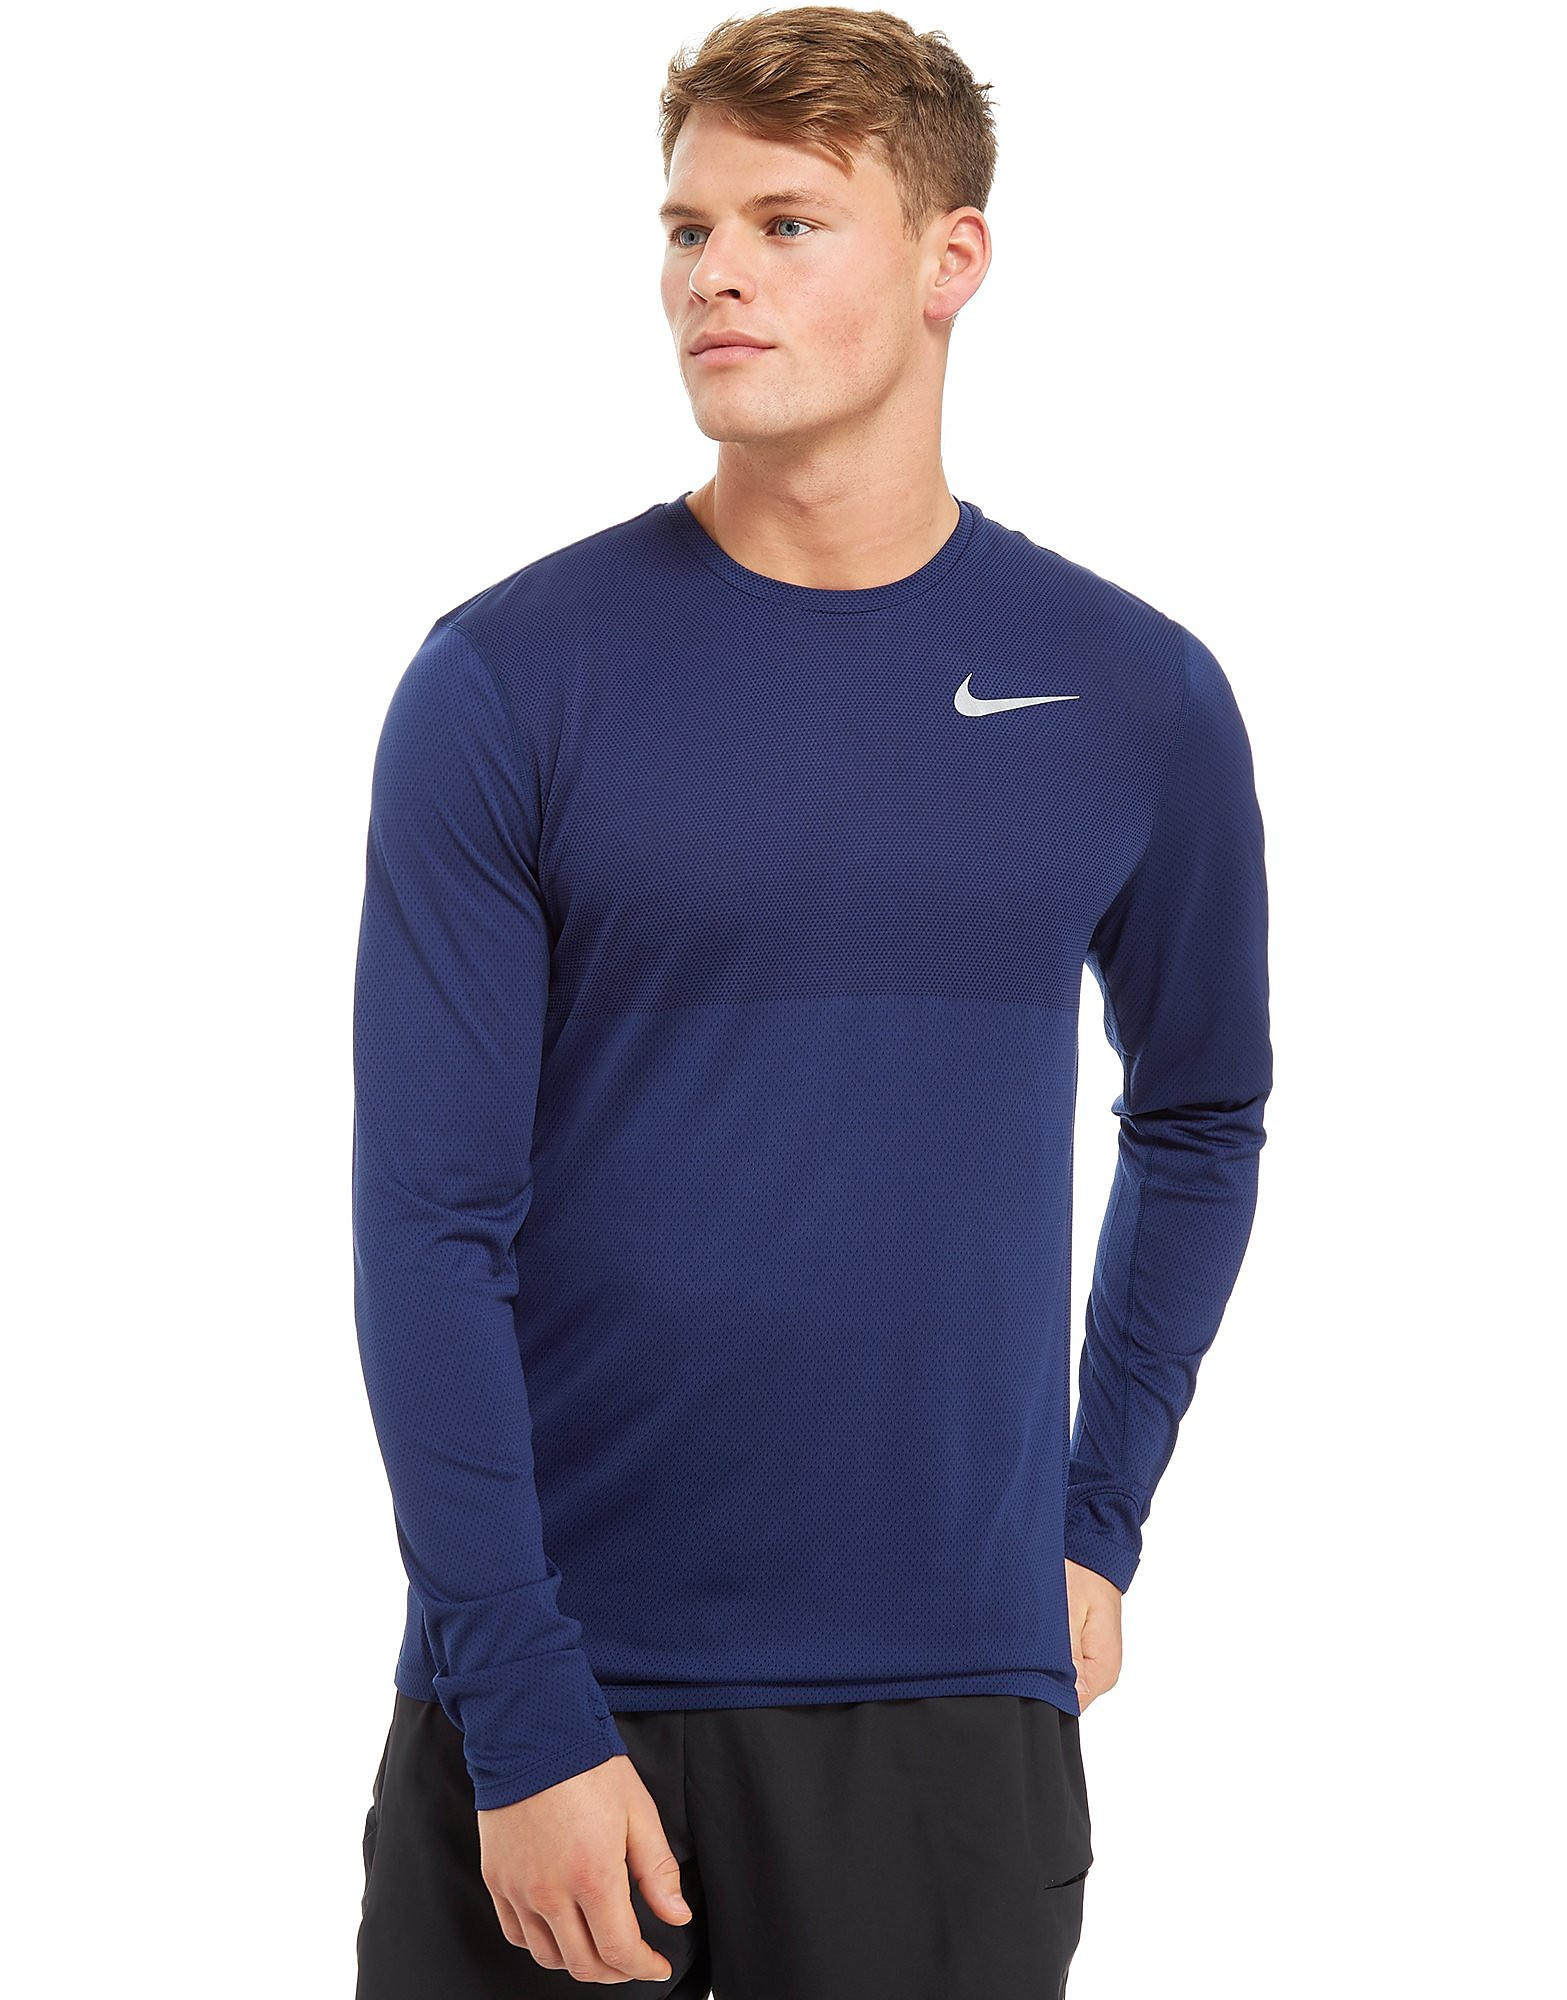 Nike Zonal Relay Long Sleeve Top